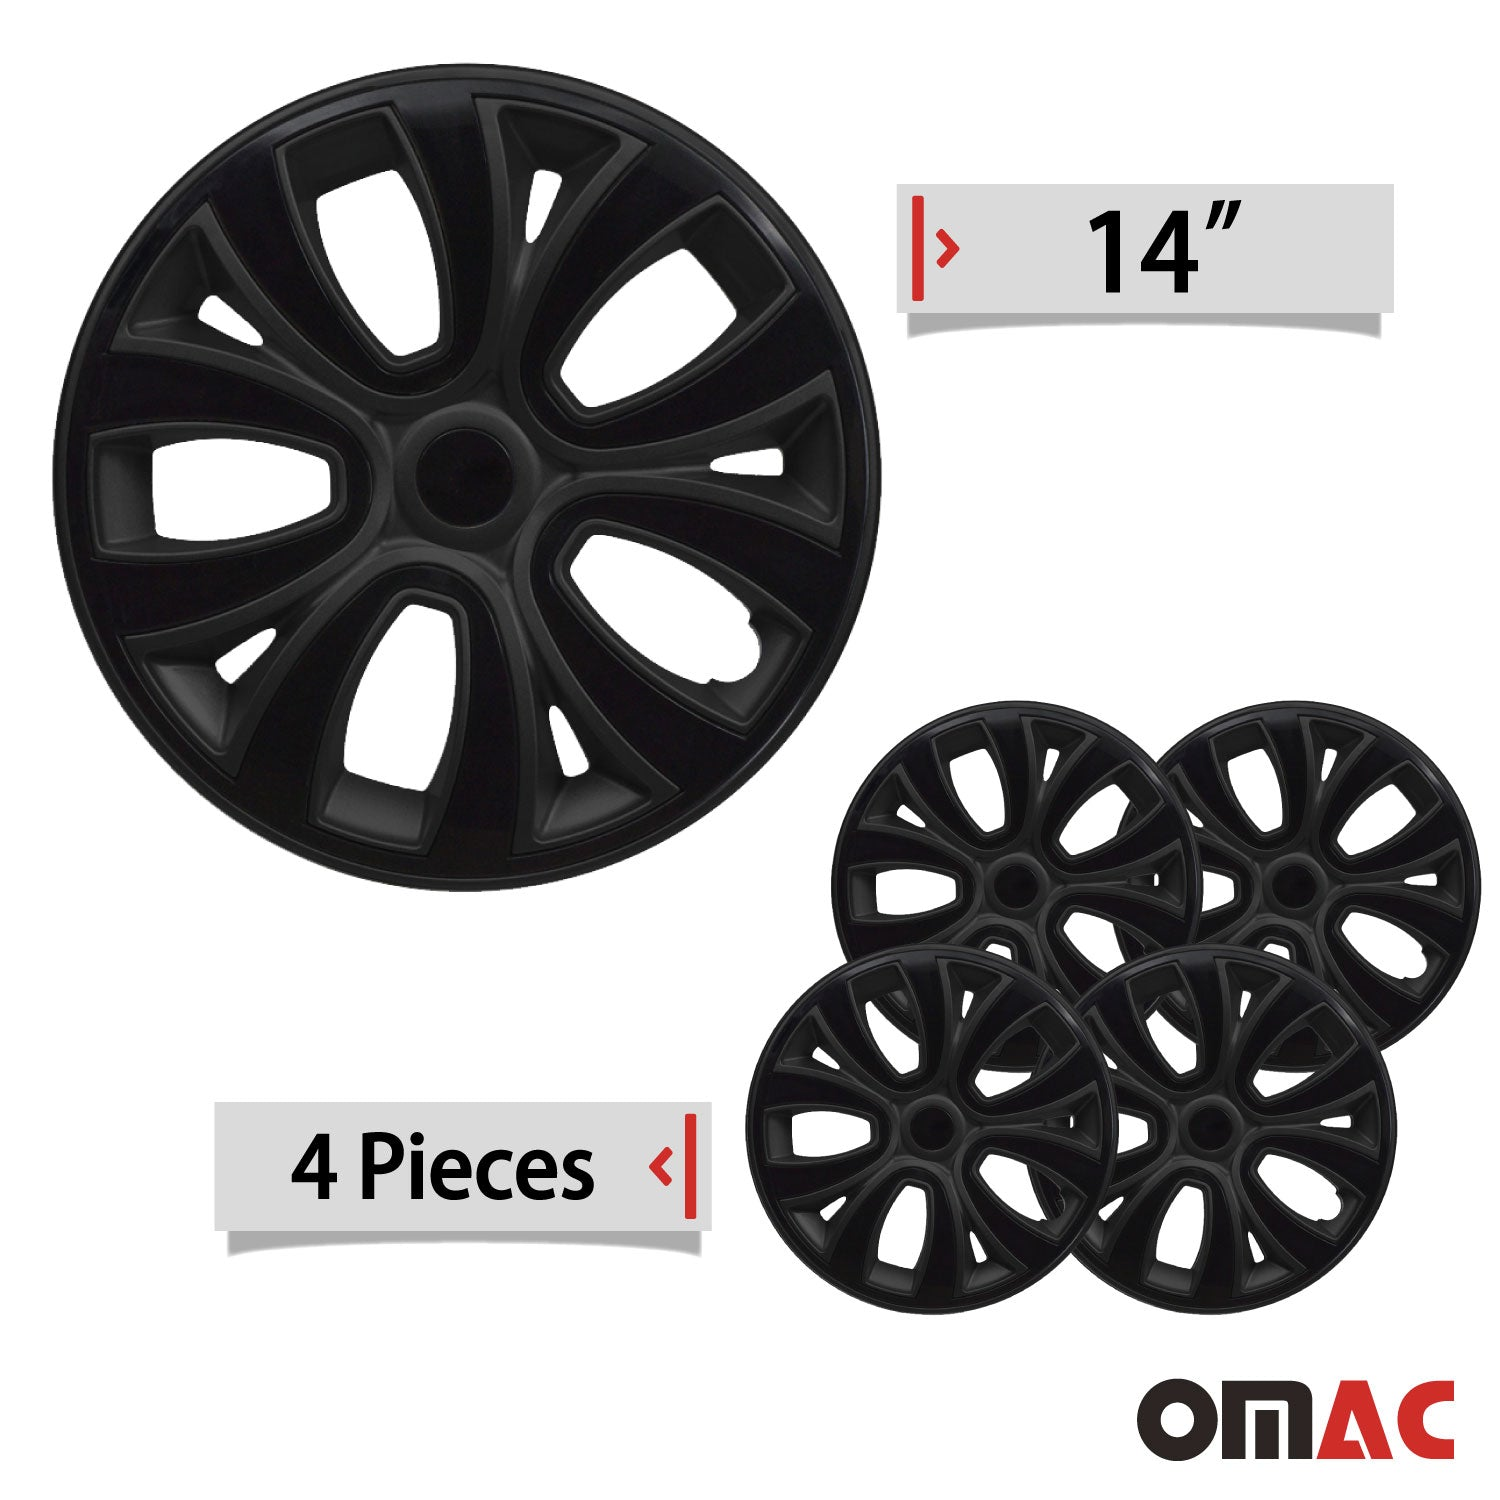 "Hubcaps 14"" Inch Wheel Rim Cover Matt Black with Black Insert 4pcs Set"